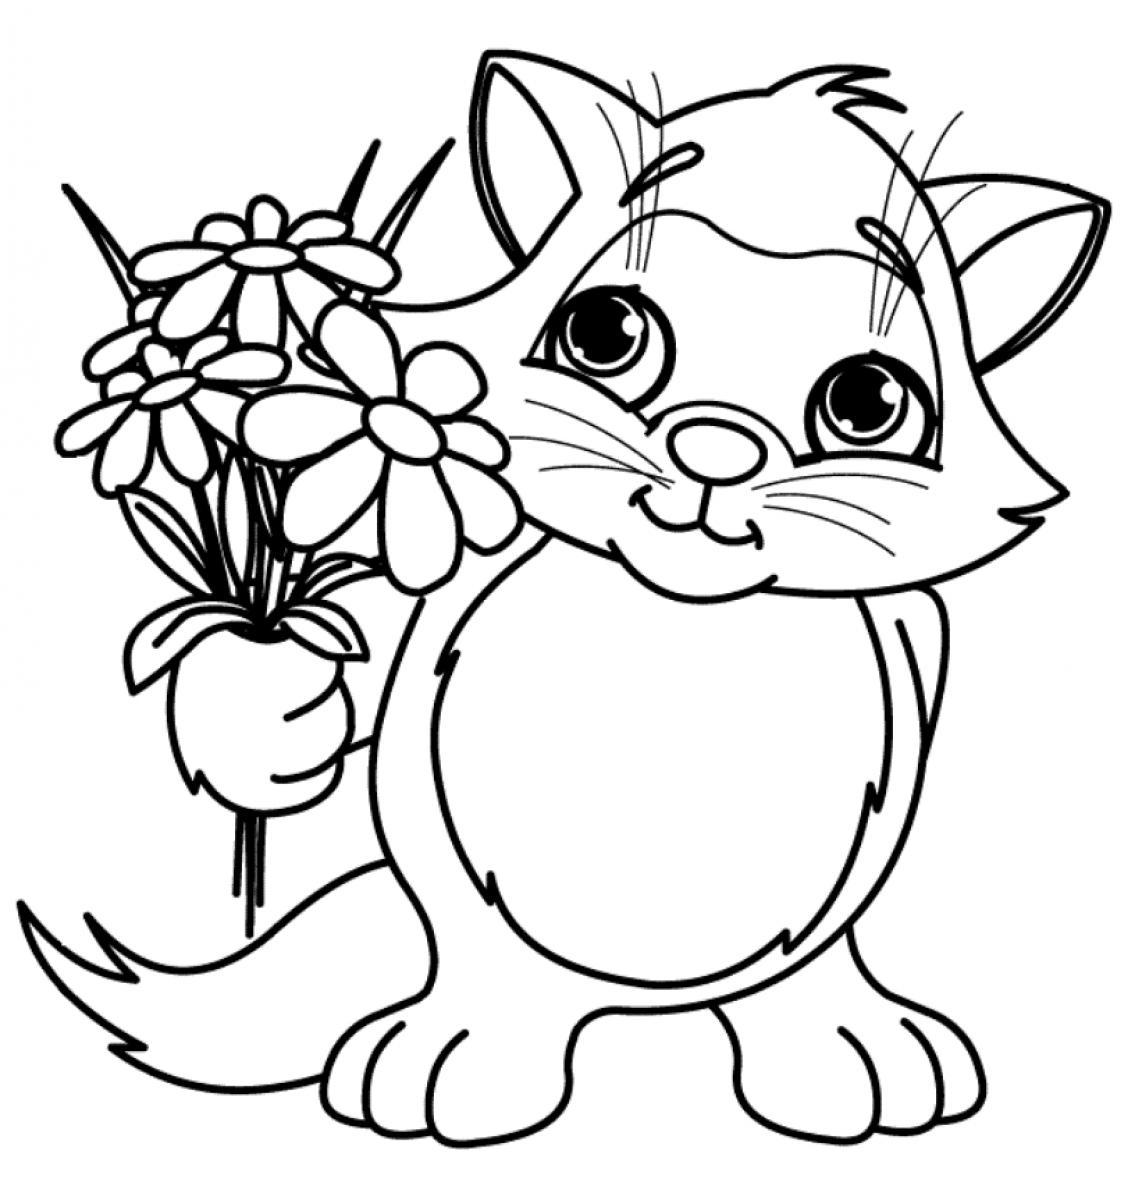 flowers coloring page free download to print beautiful spring flower coloring coloring page flowers